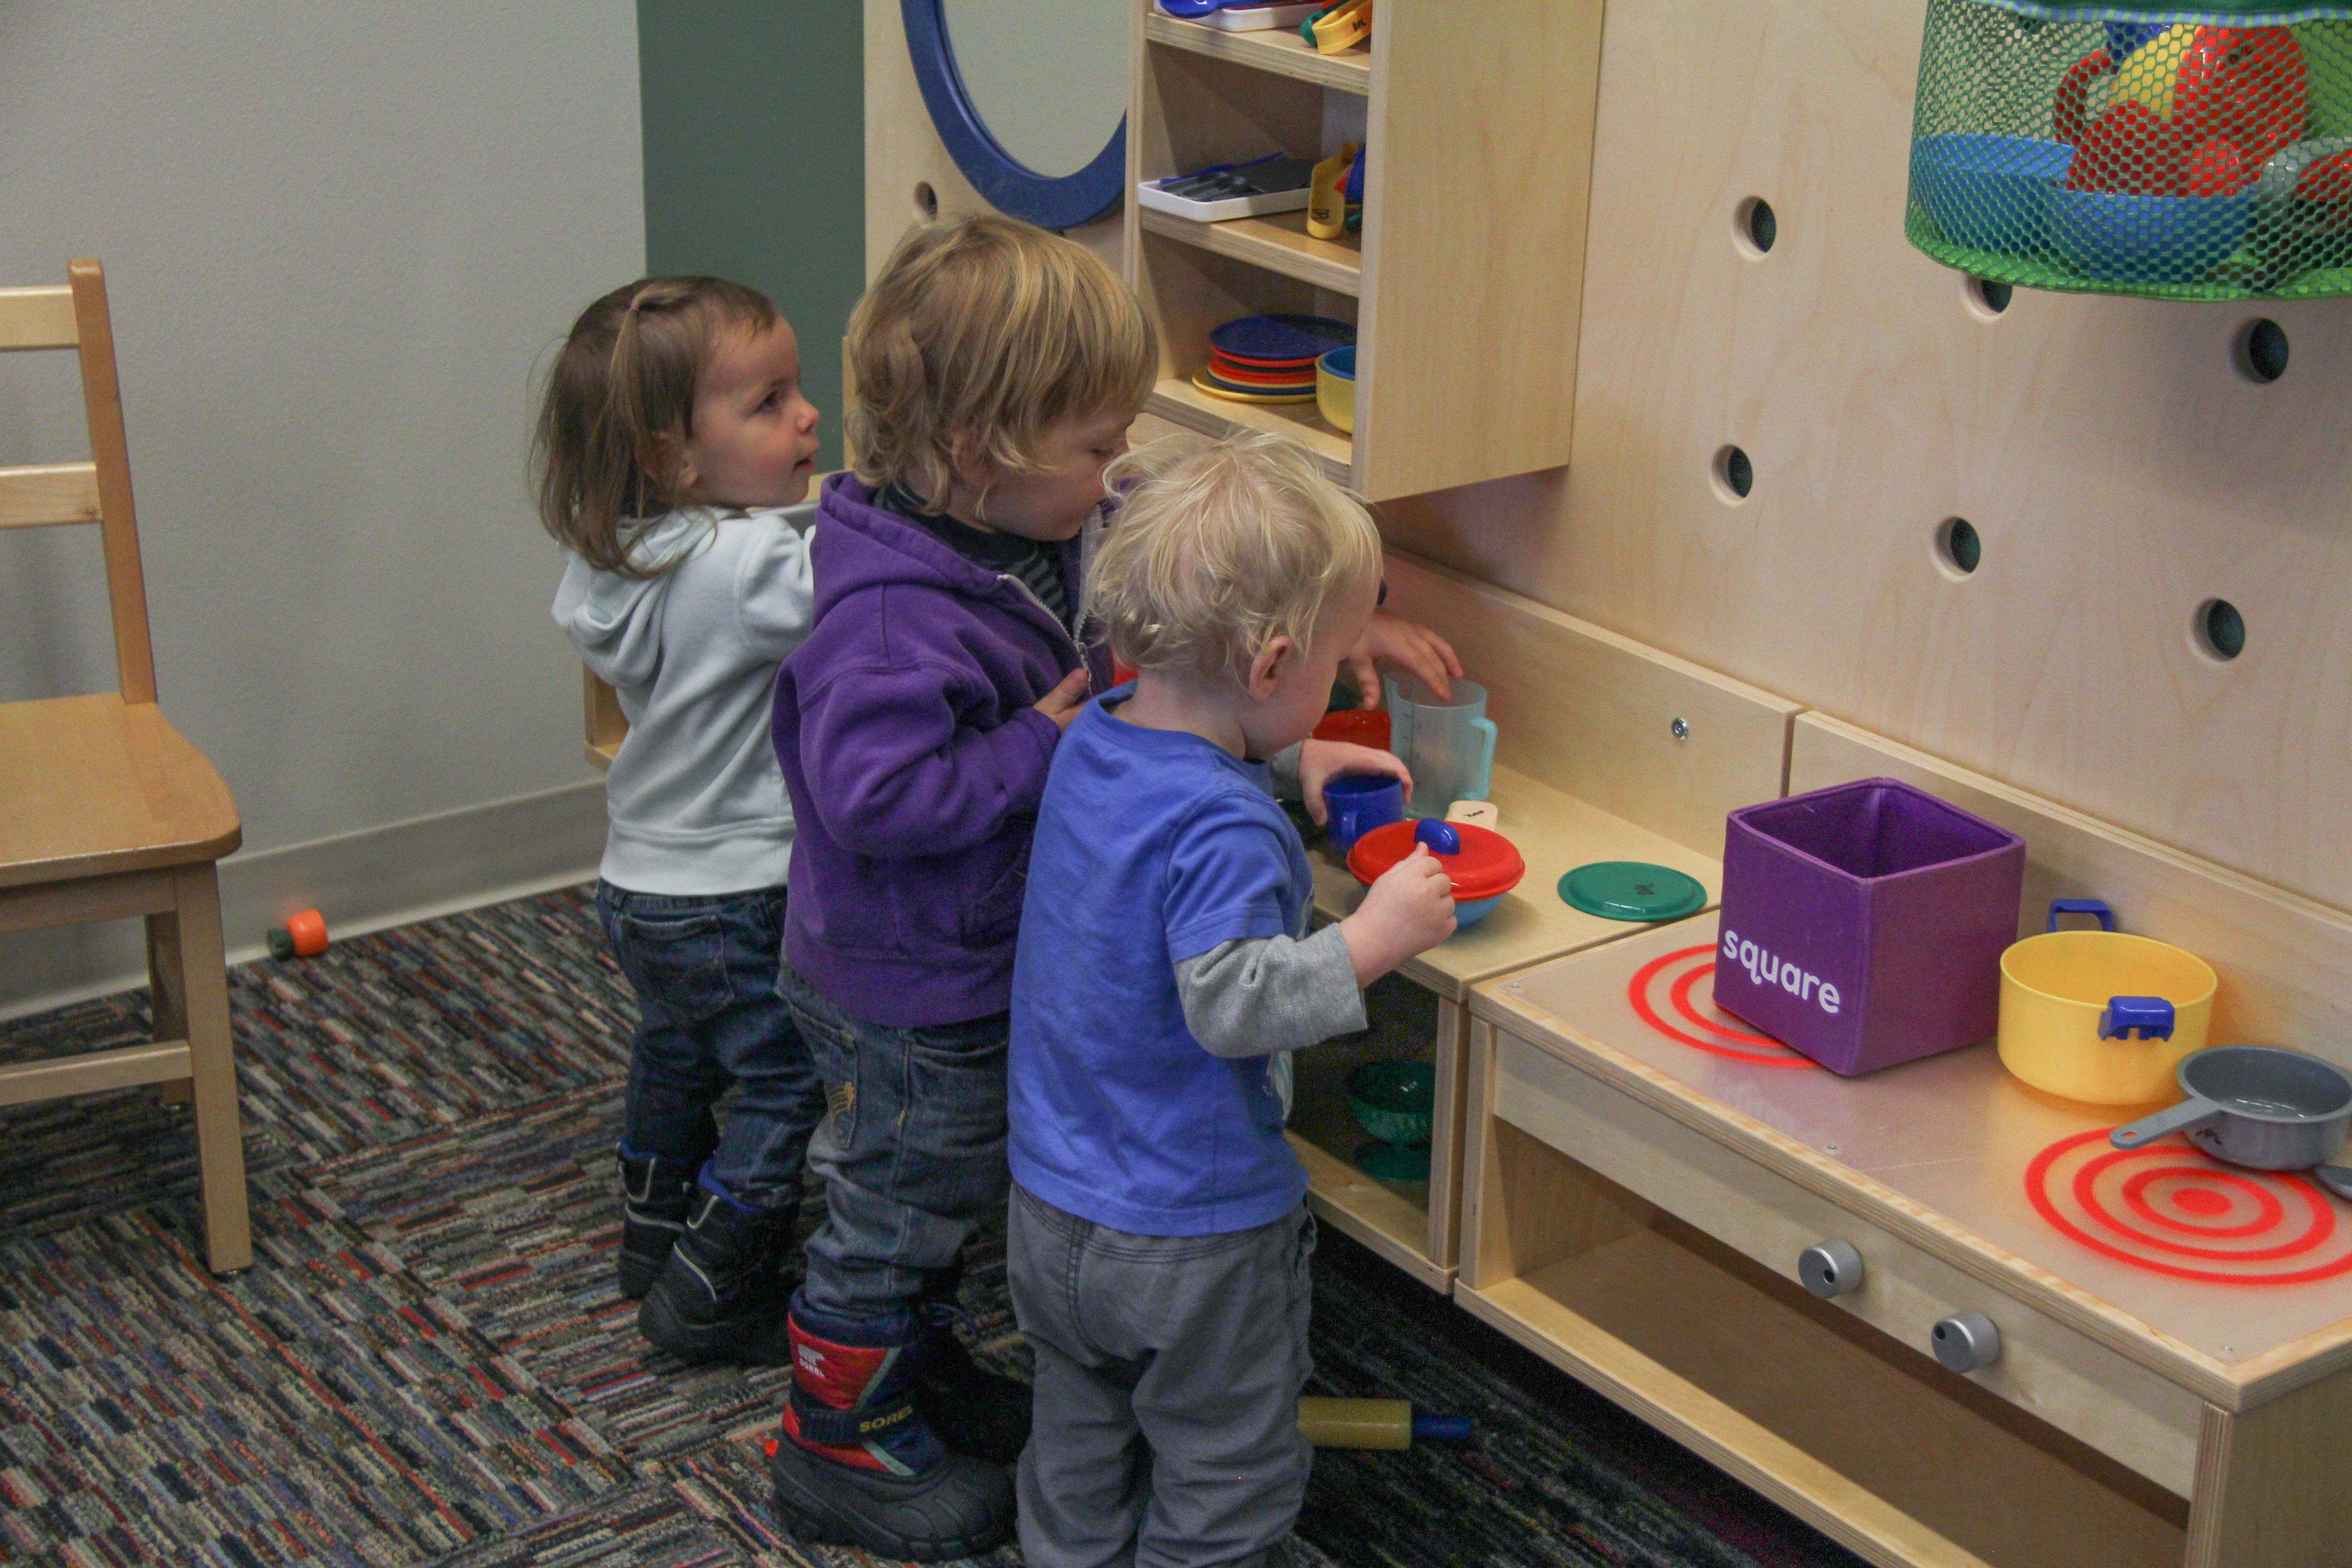 Children playing at a library early learning space